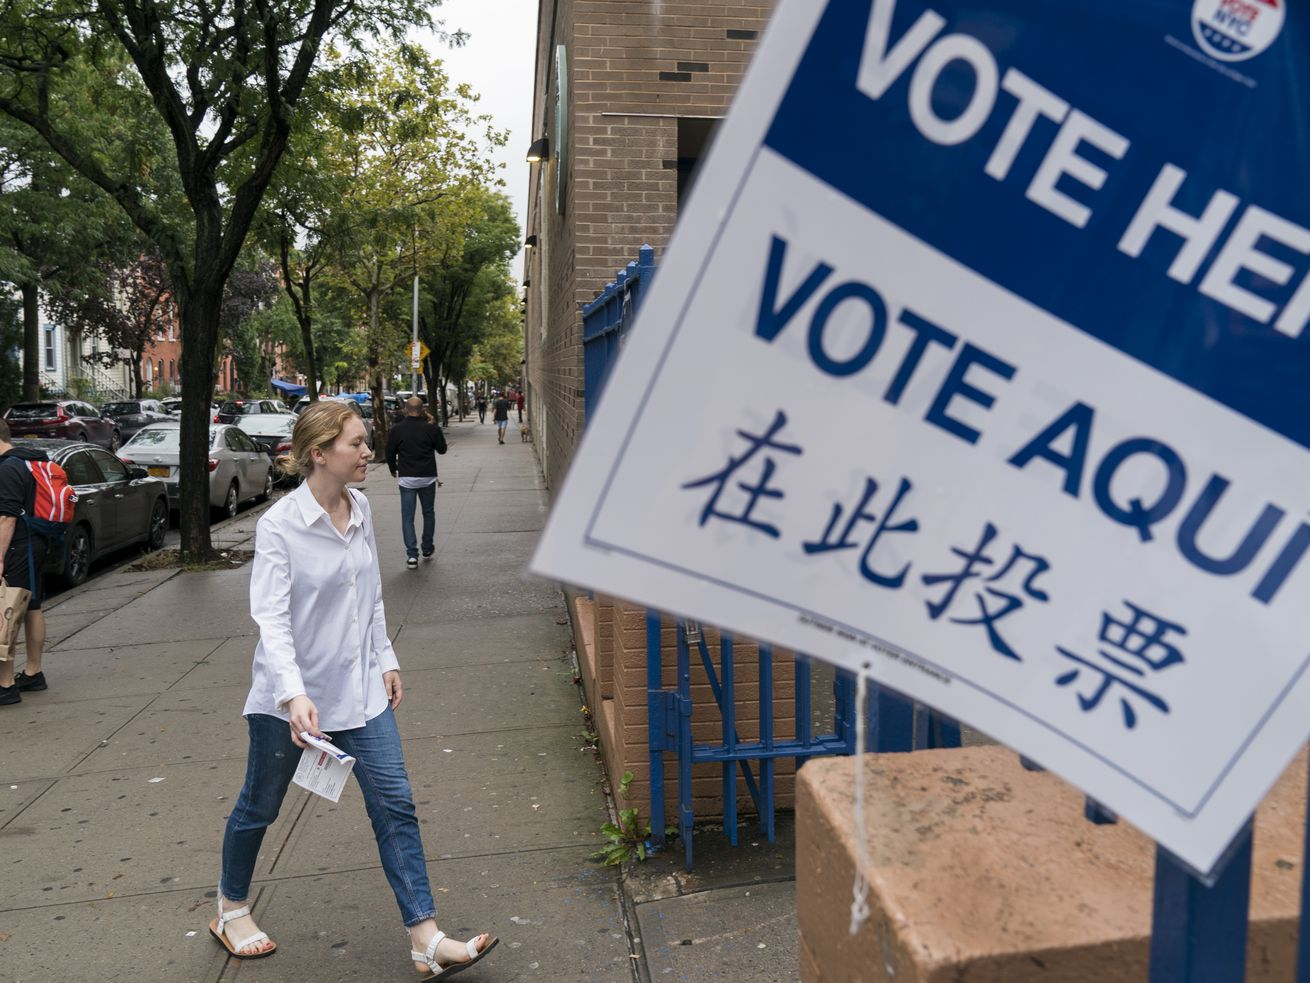 A woman arrives at a polling station on New York state's primary election day in September 2018.